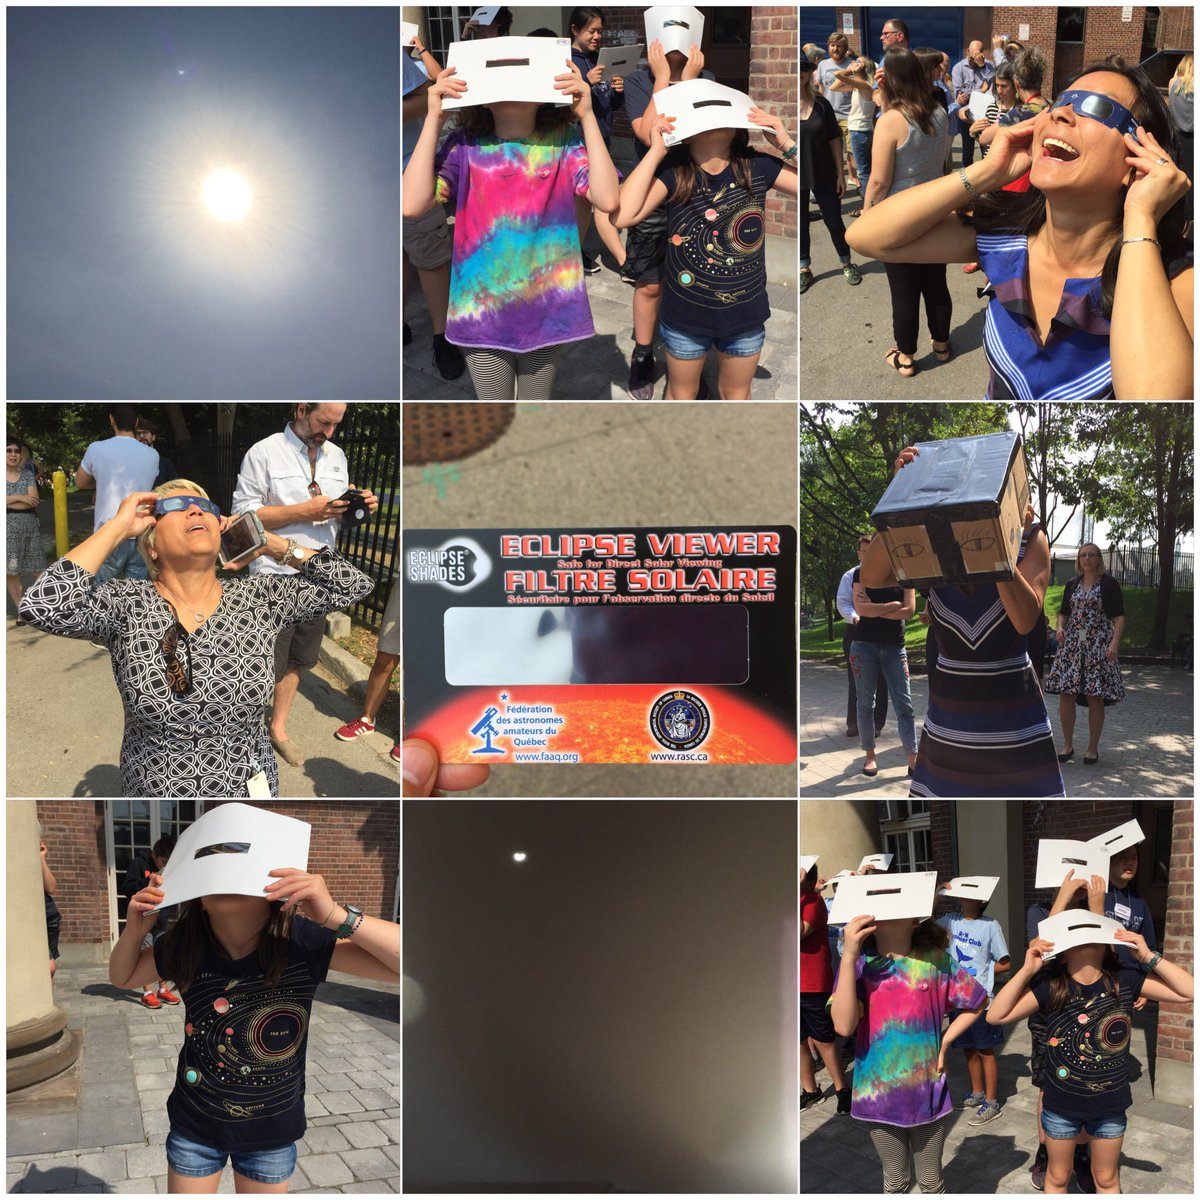 @ROMKids #SummerClub75 and @ROMPatrons viewing #epic #SolarEclipse2017 #realworldscience<br>http://pic.twitter.com/S748vsdwIw